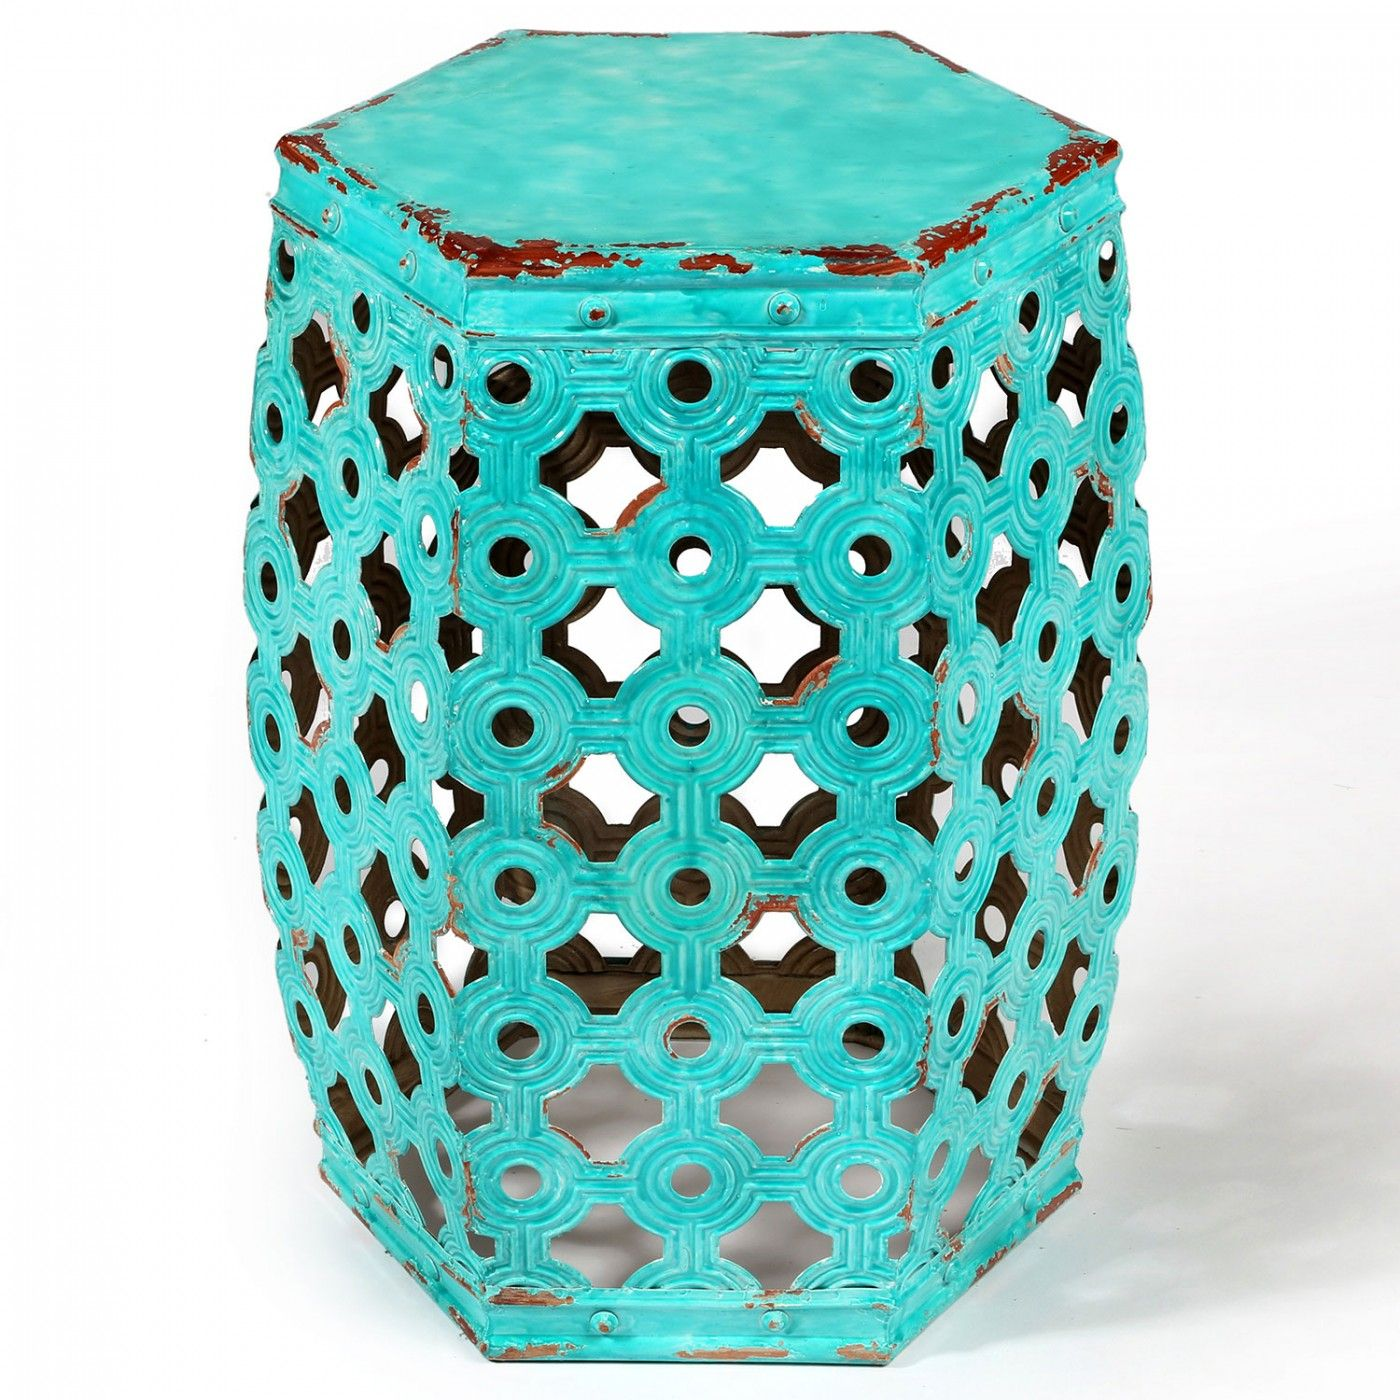 Hexagonal Pressed Metal Stool Aqua   Moroccan | Interiors Online   Furniture  Online U0026 Decorating Accessories